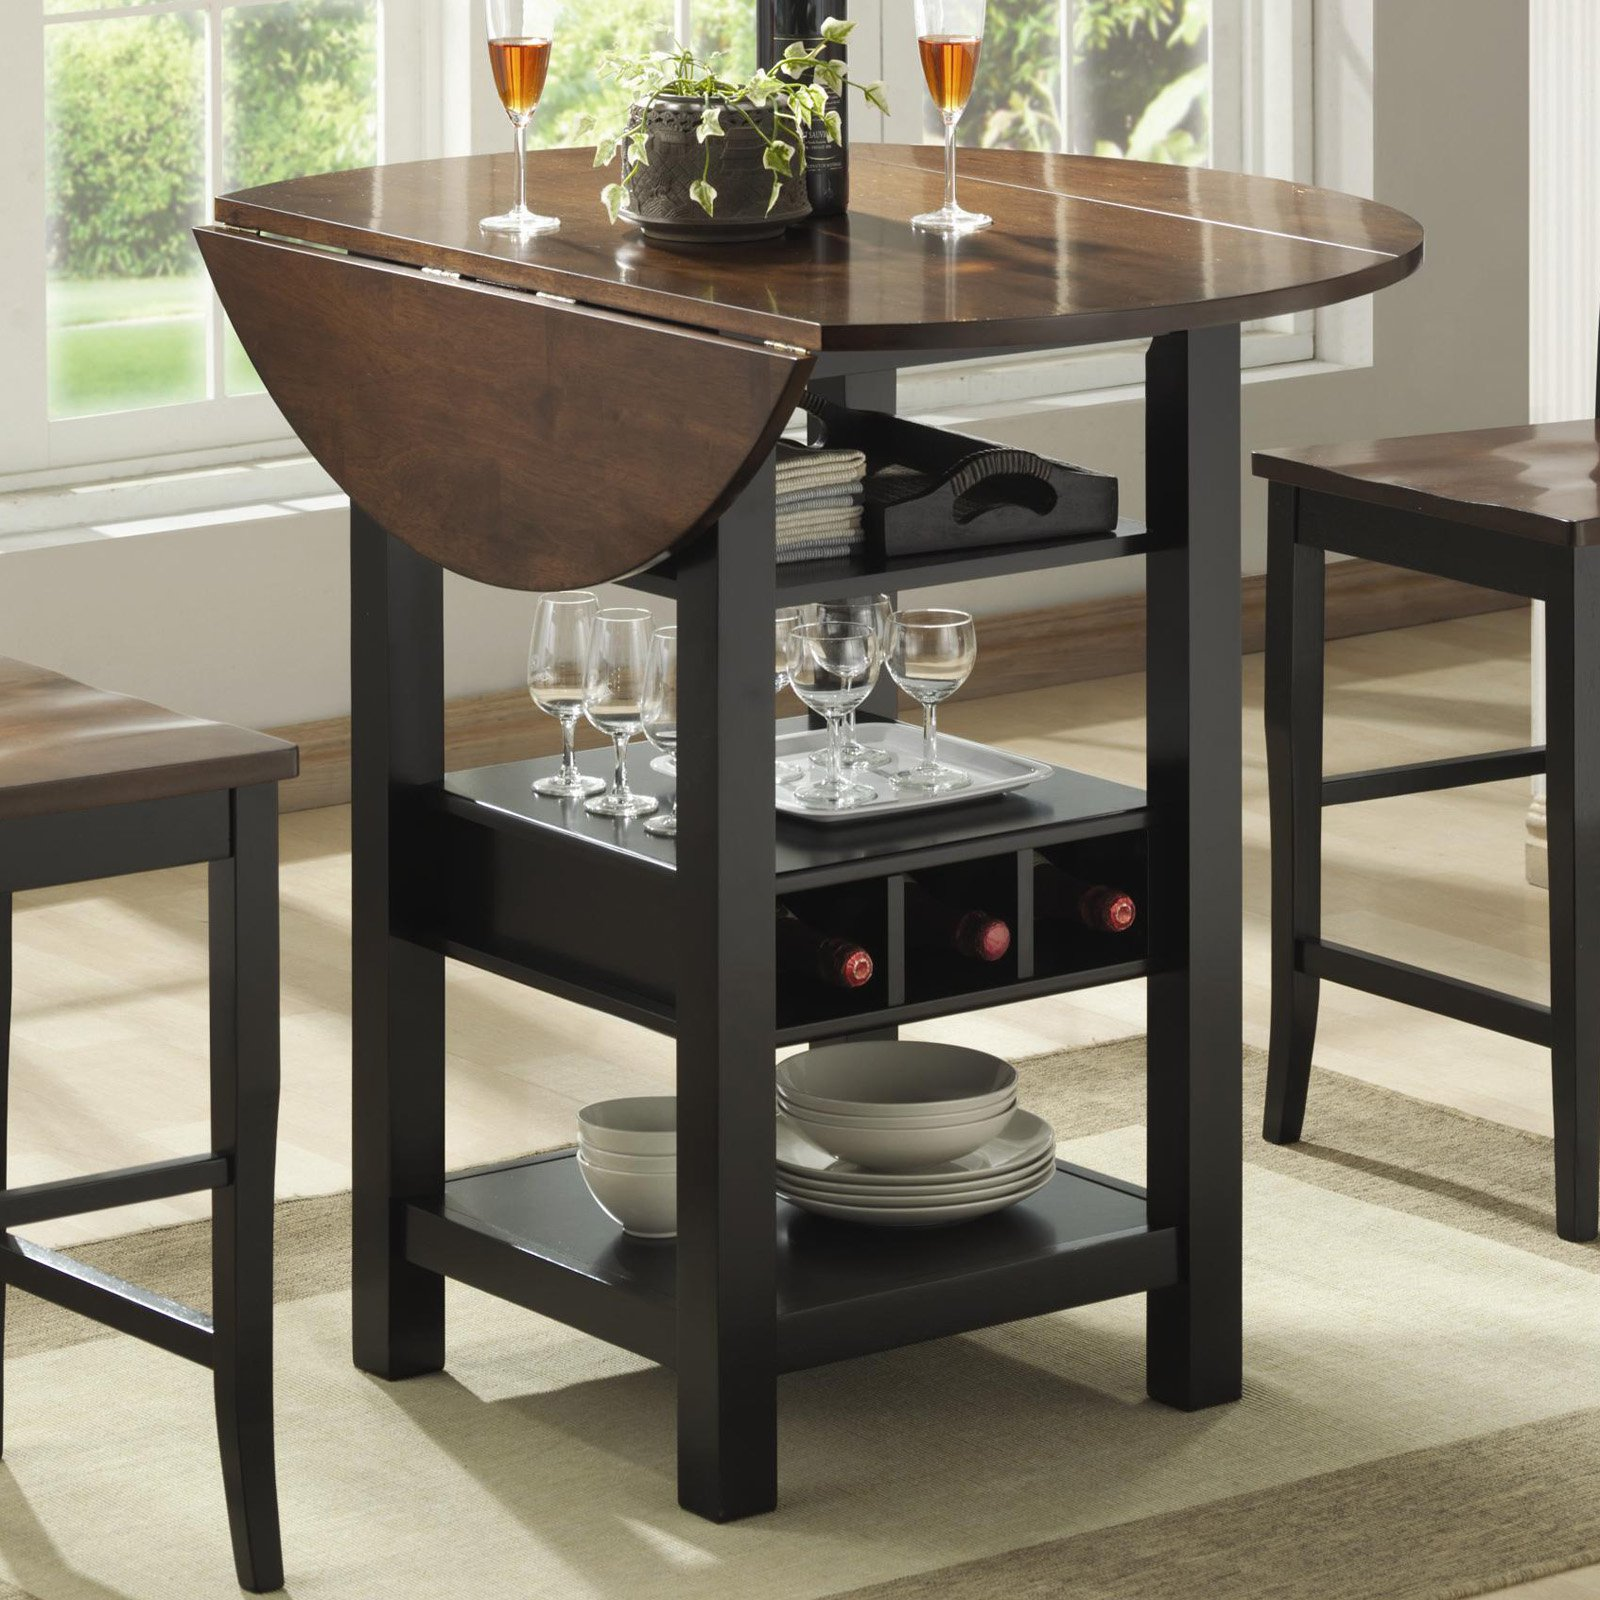 narrow counter height table for kitchen ridgewood counter height drop leaf dining table with storage - KNVLKDZ